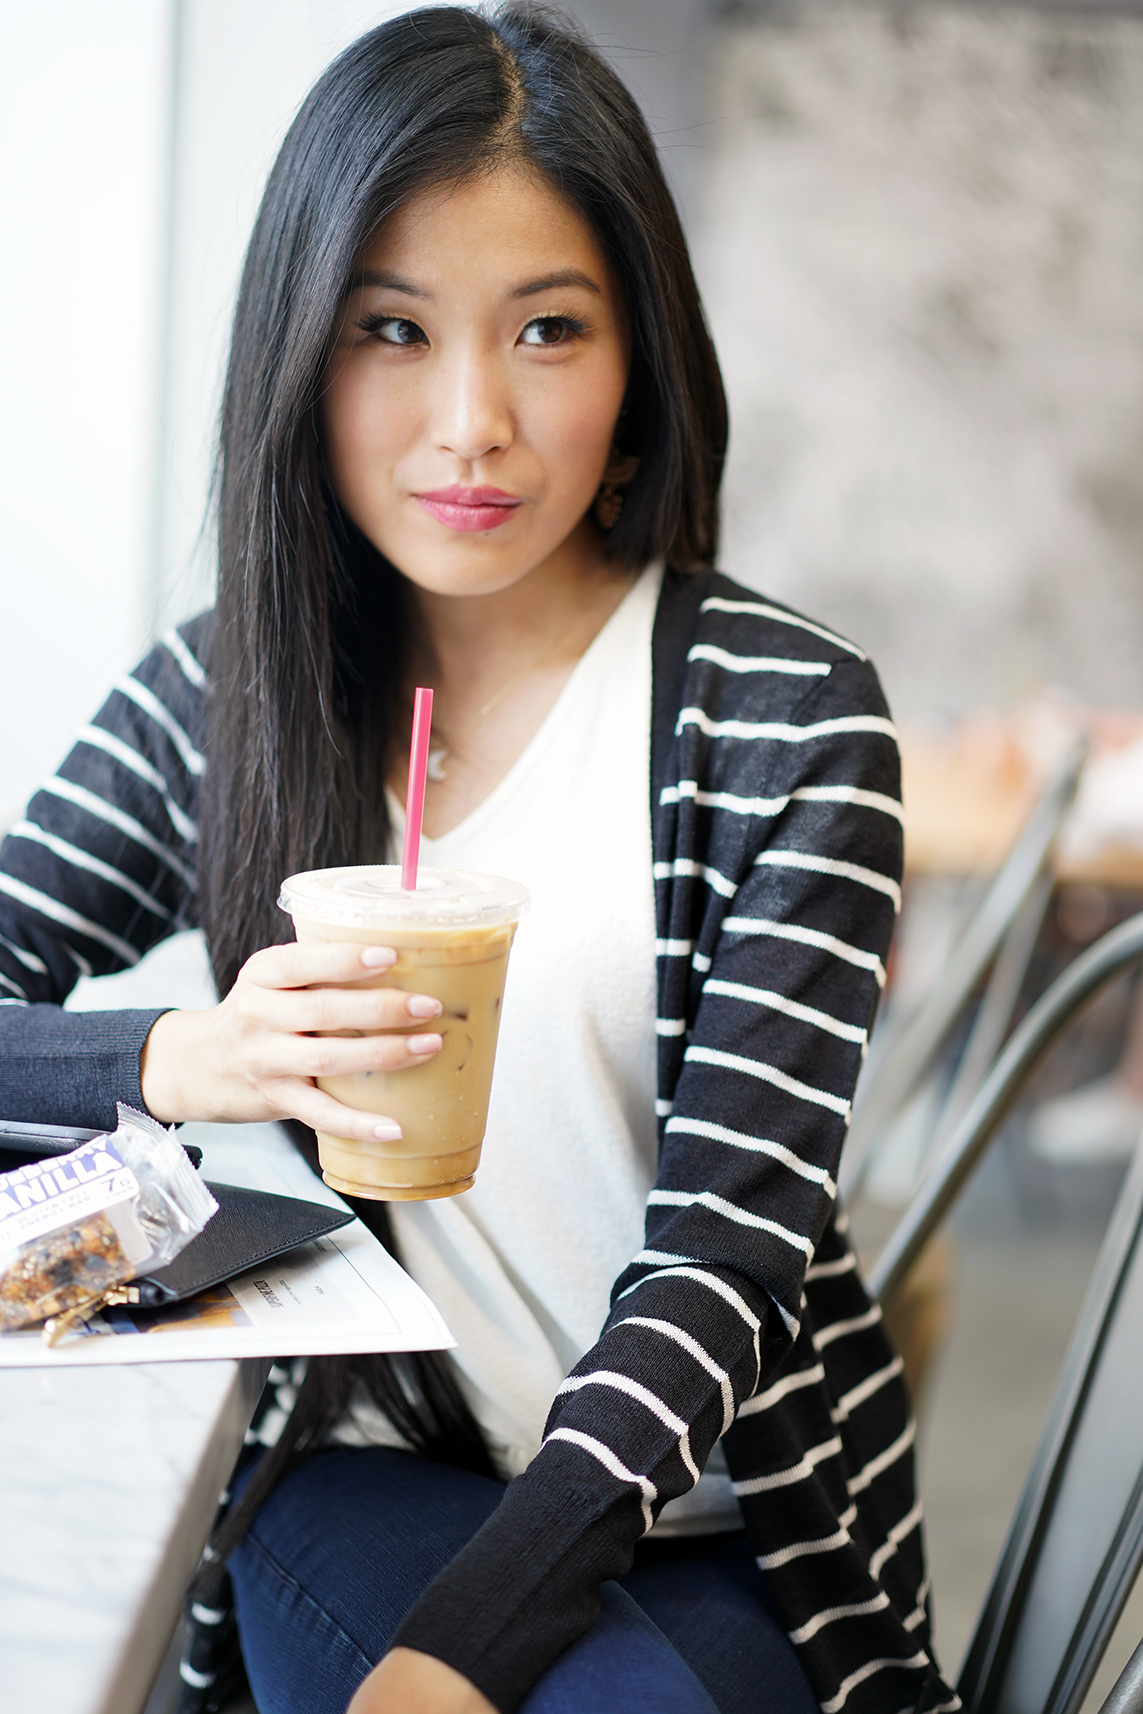 Halogen Long Linen Blend Cardigan with Black and Ivory Stripe Pattern and Giselle Fanned Linear Earrings from Francesaca's enjoying iced coffee from Cognoscenti Coffee